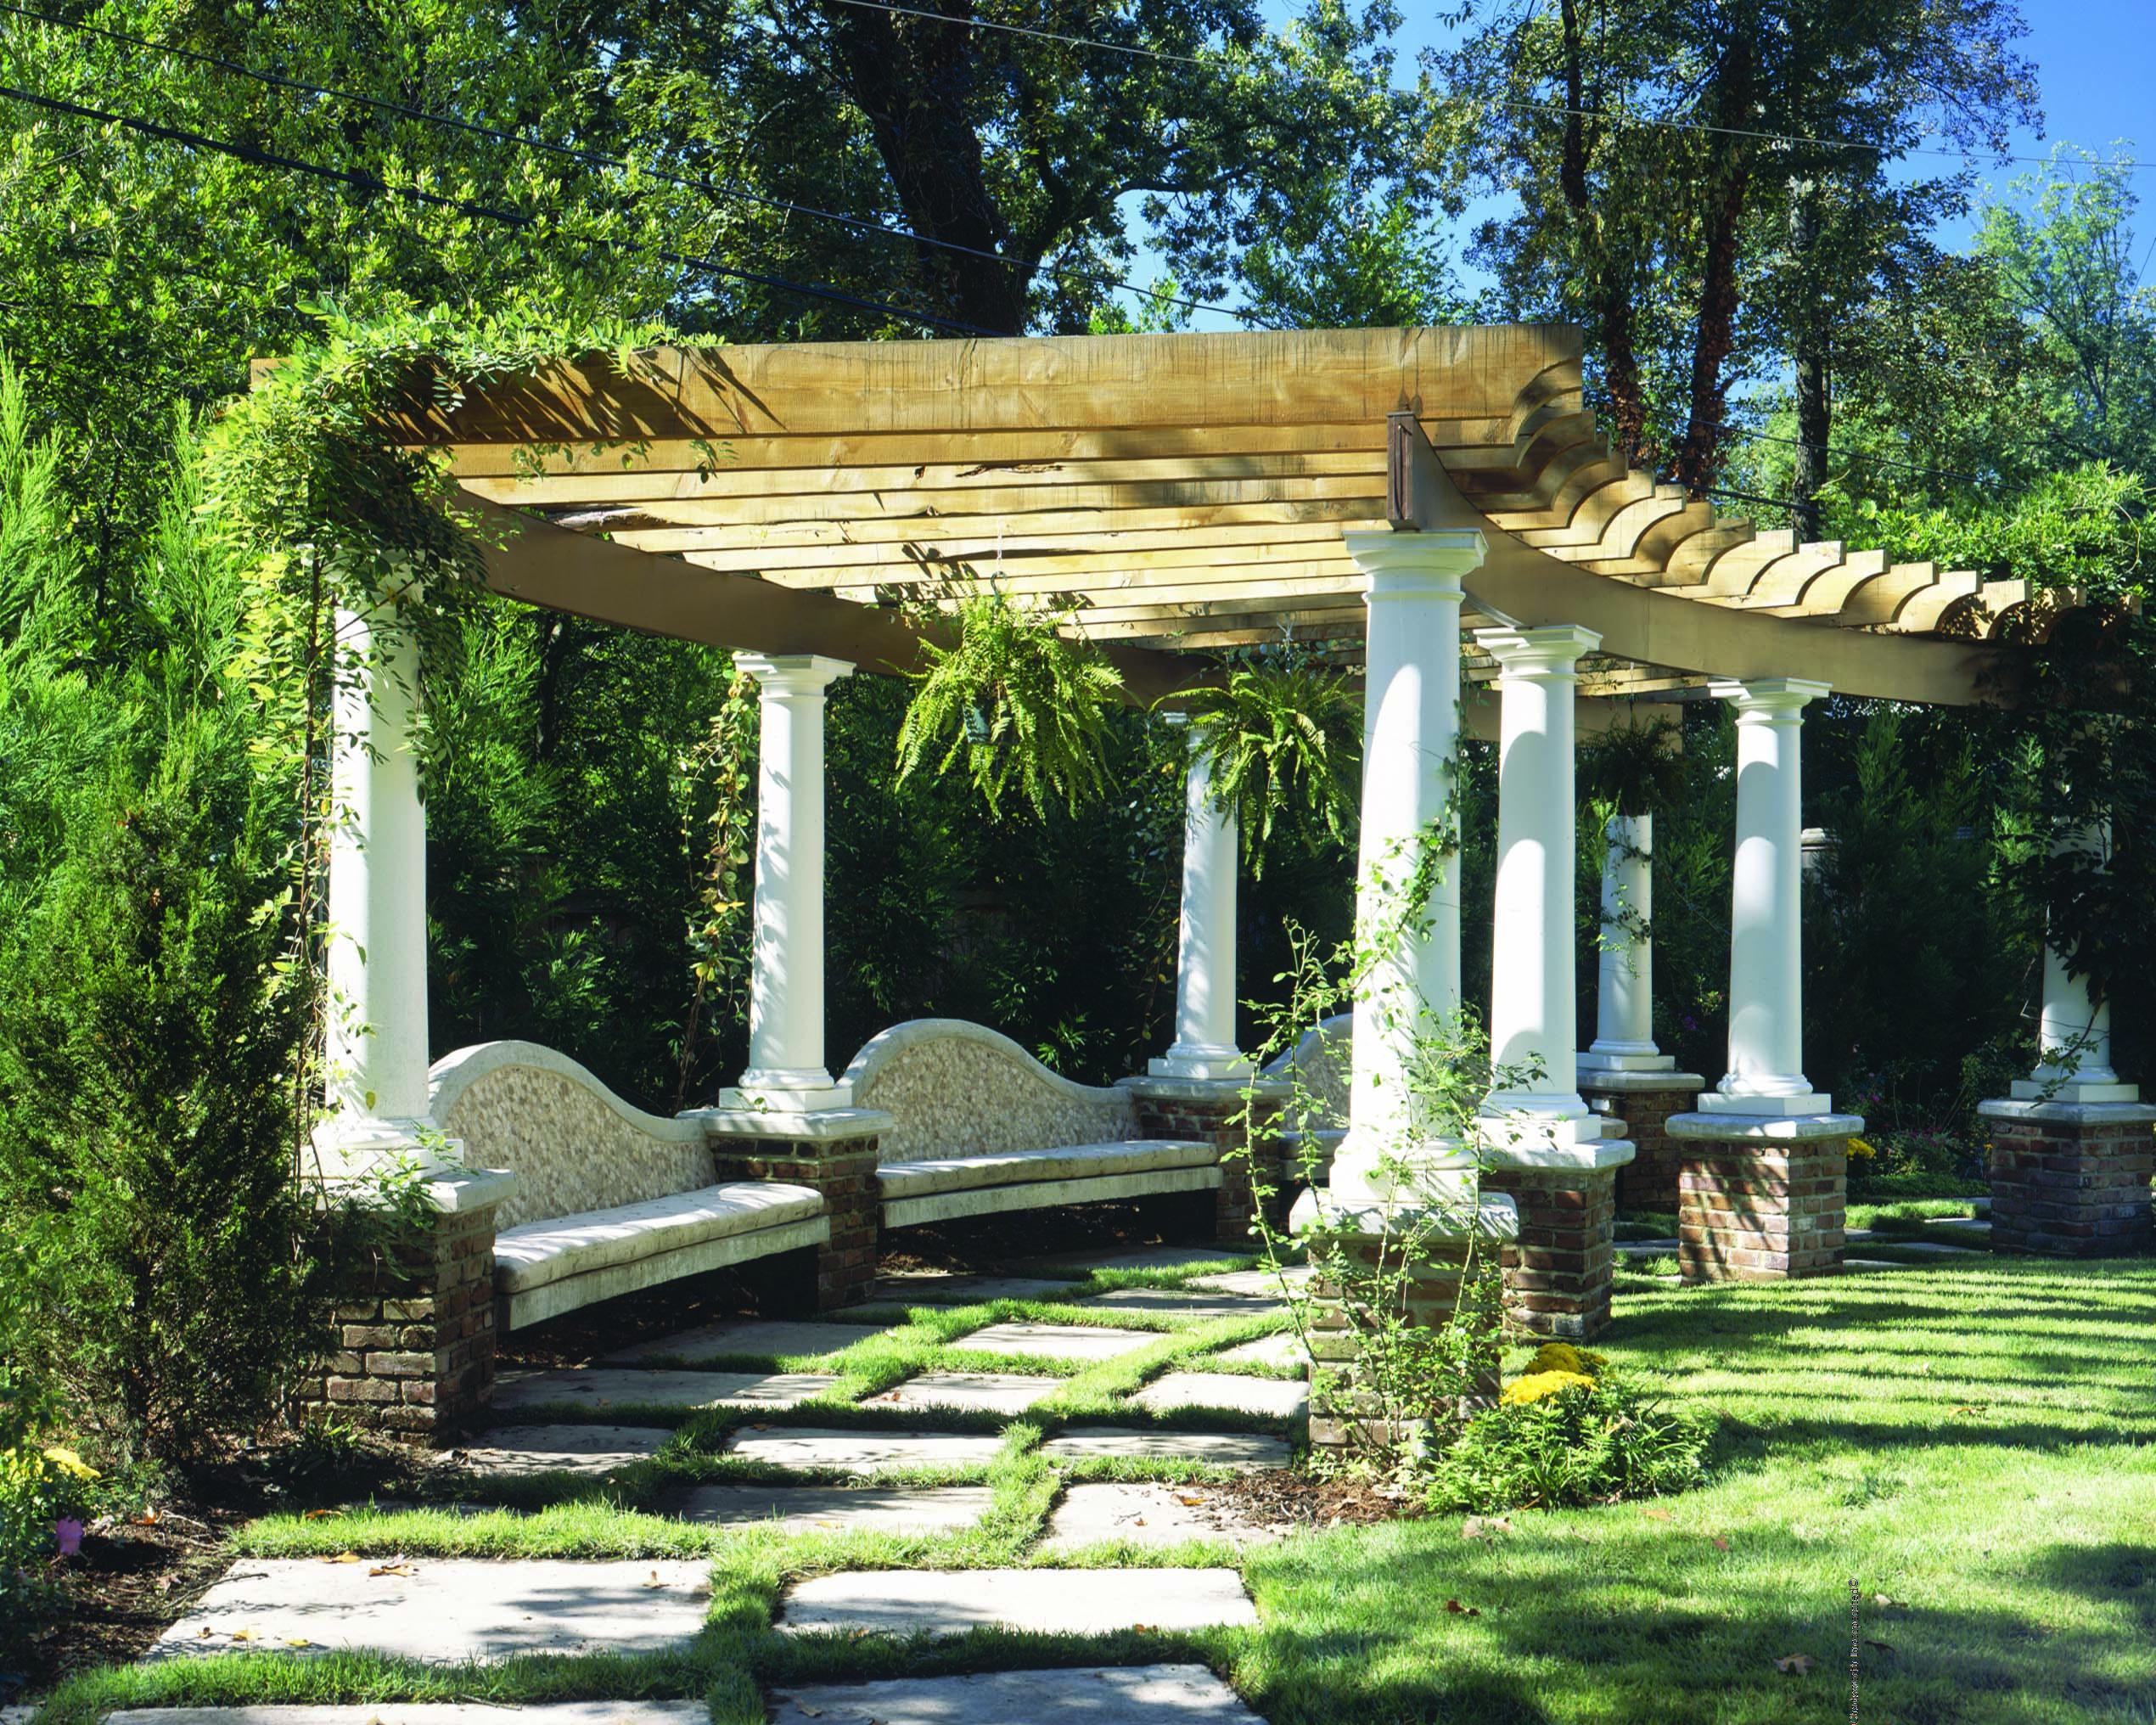 pergola custom pergola design 3024 chadsworth columns 1 800 486 2118. Black Bedroom Furniture Sets. Home Design Ideas